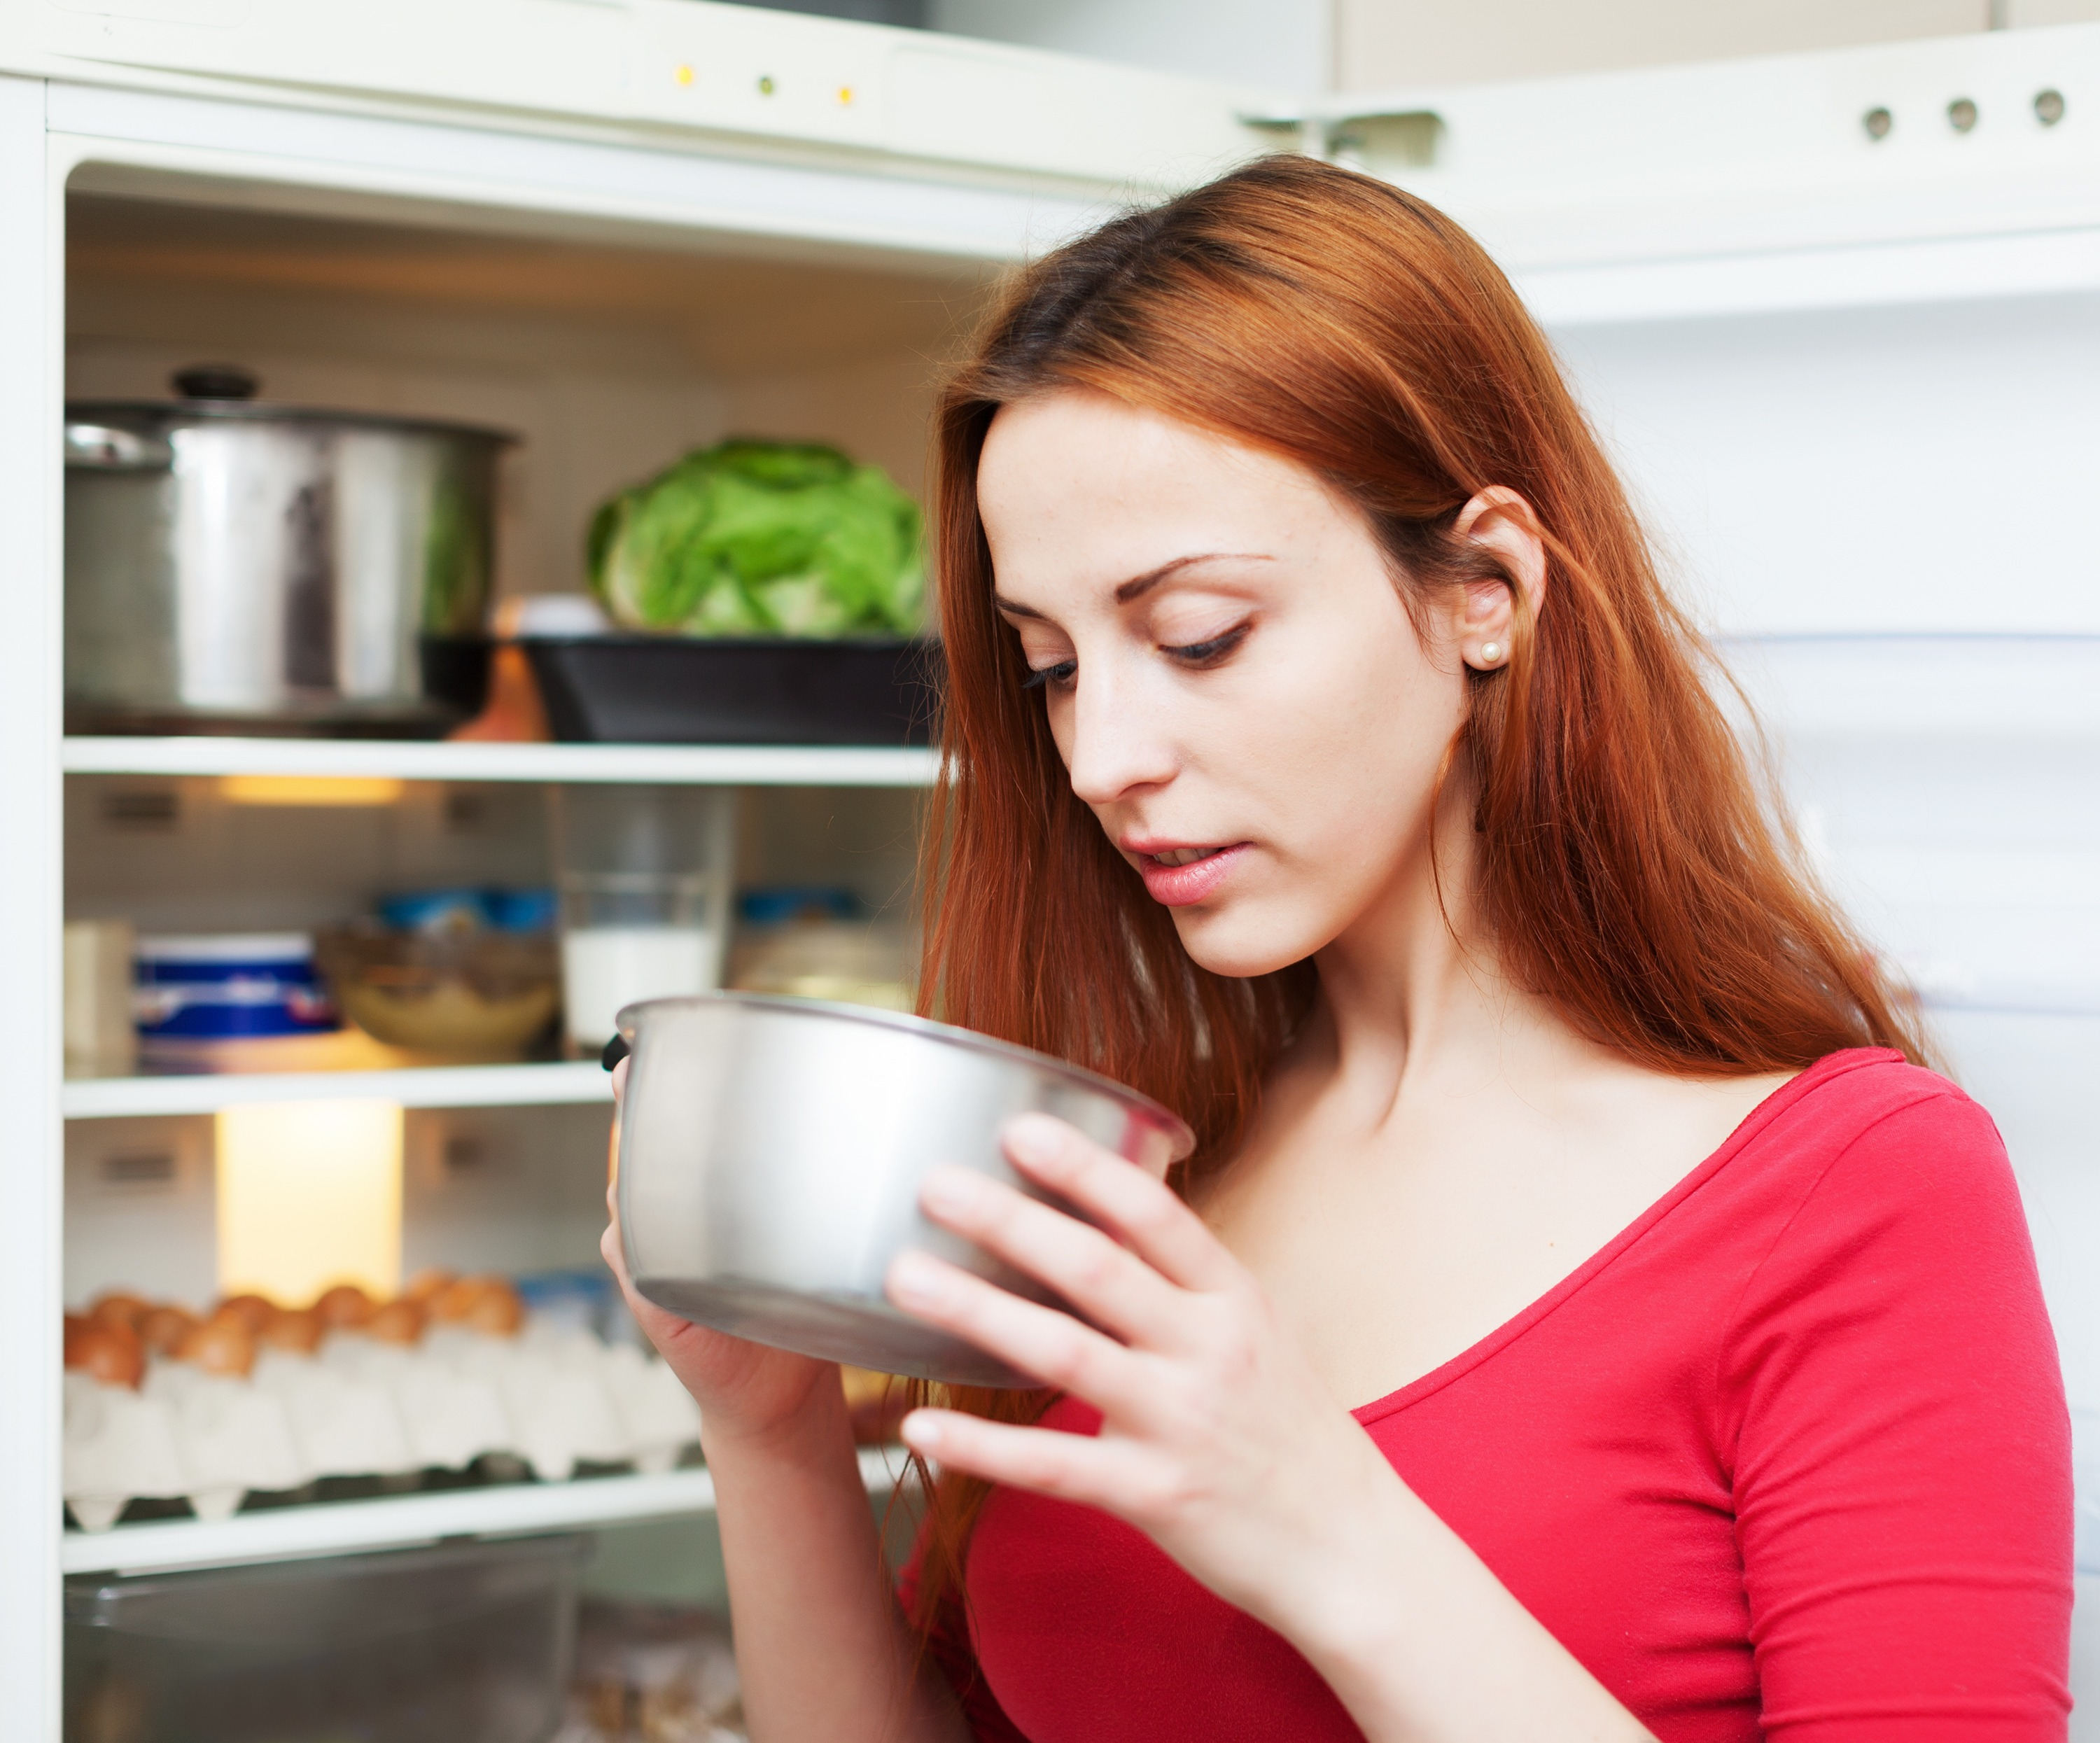 Red-haired Woman Looking For Something In Pan Near Fridge At Home